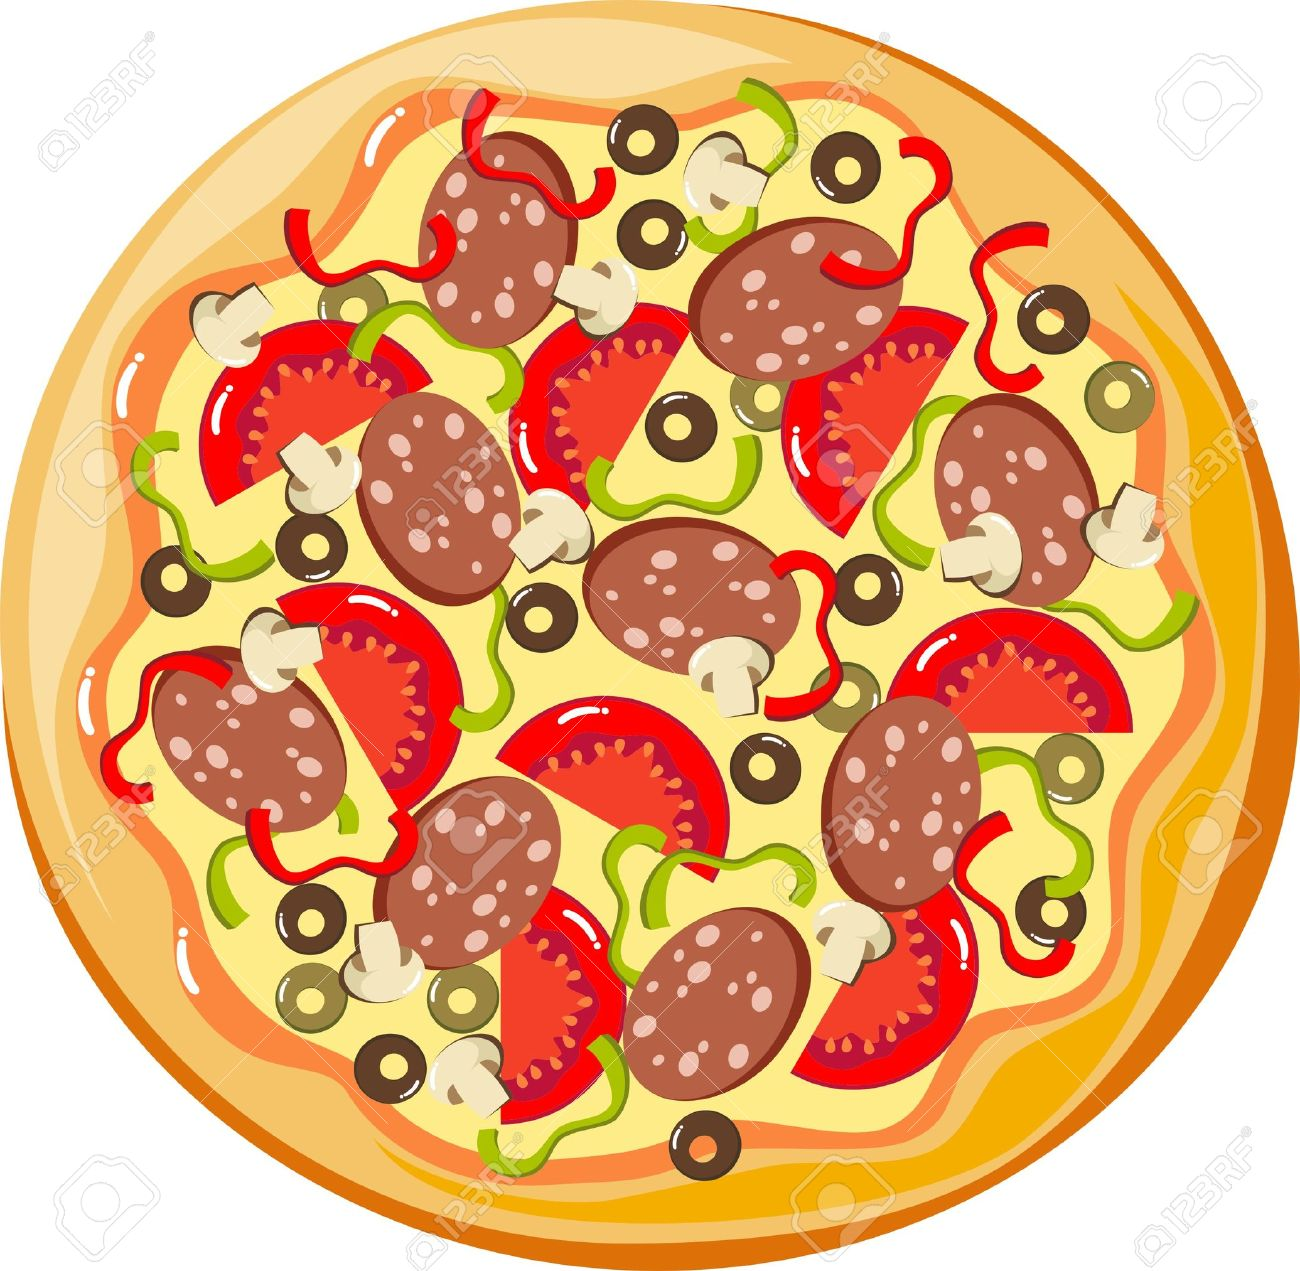 Pizza Free Cliparts Vectors And Stock Illustration